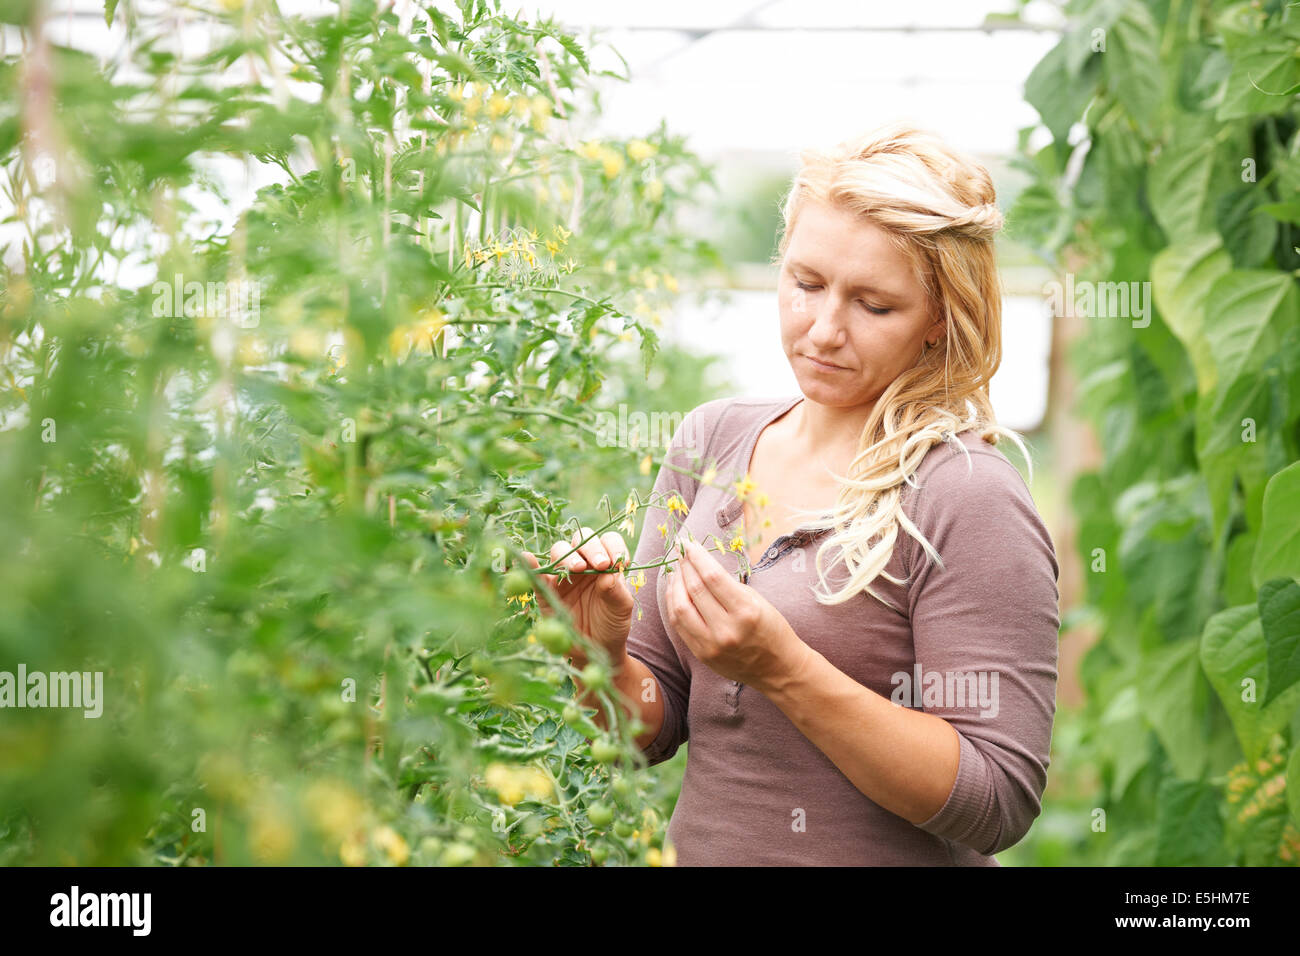 Farm Worker In Greenhouse Checking Tomato Plants - Stock Image